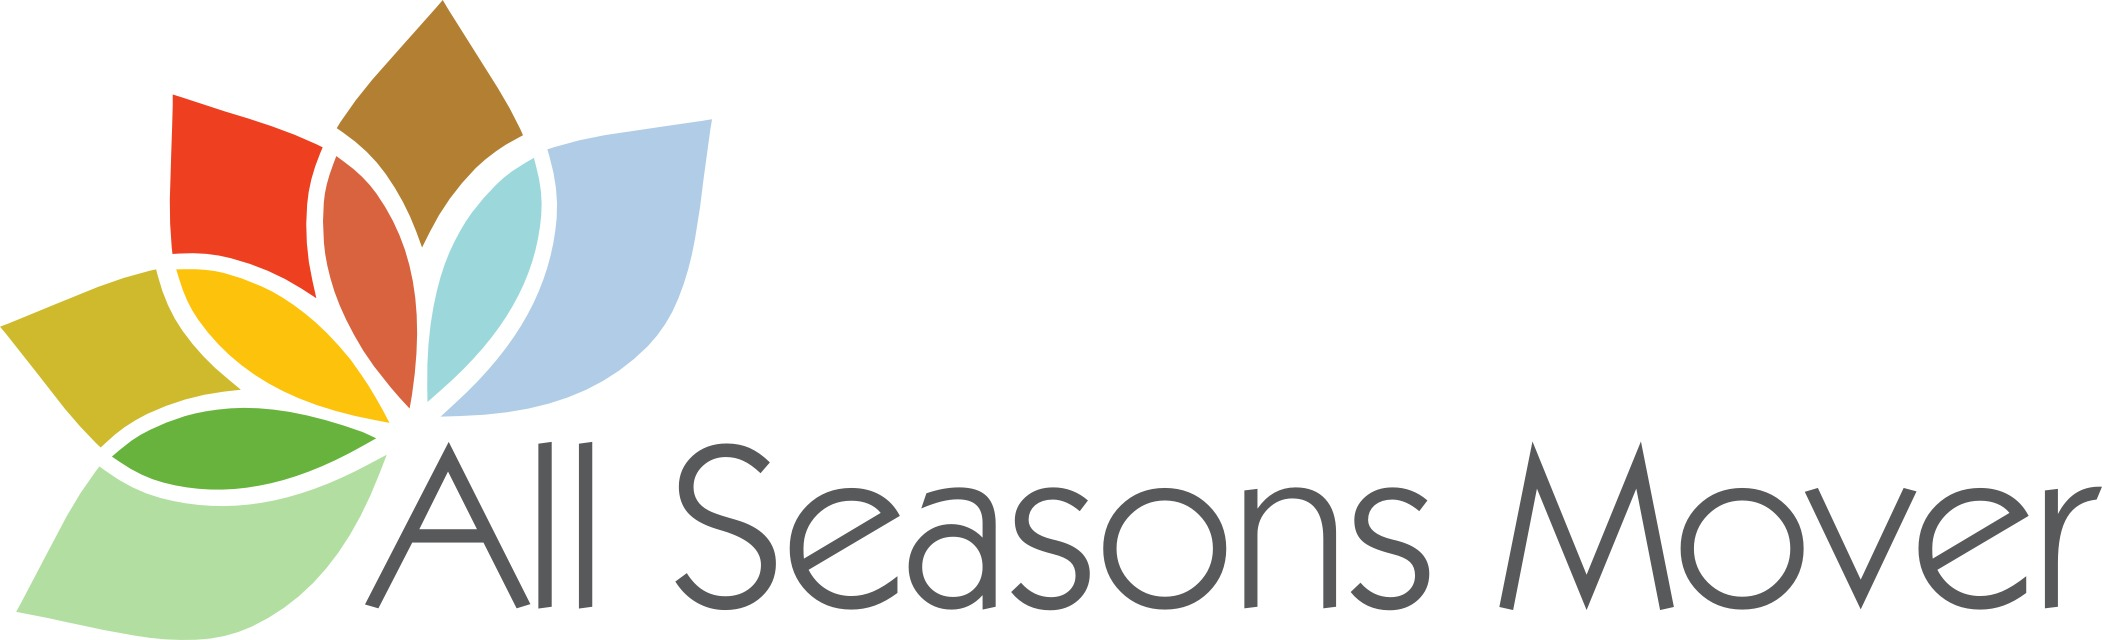 All Seasons Mover